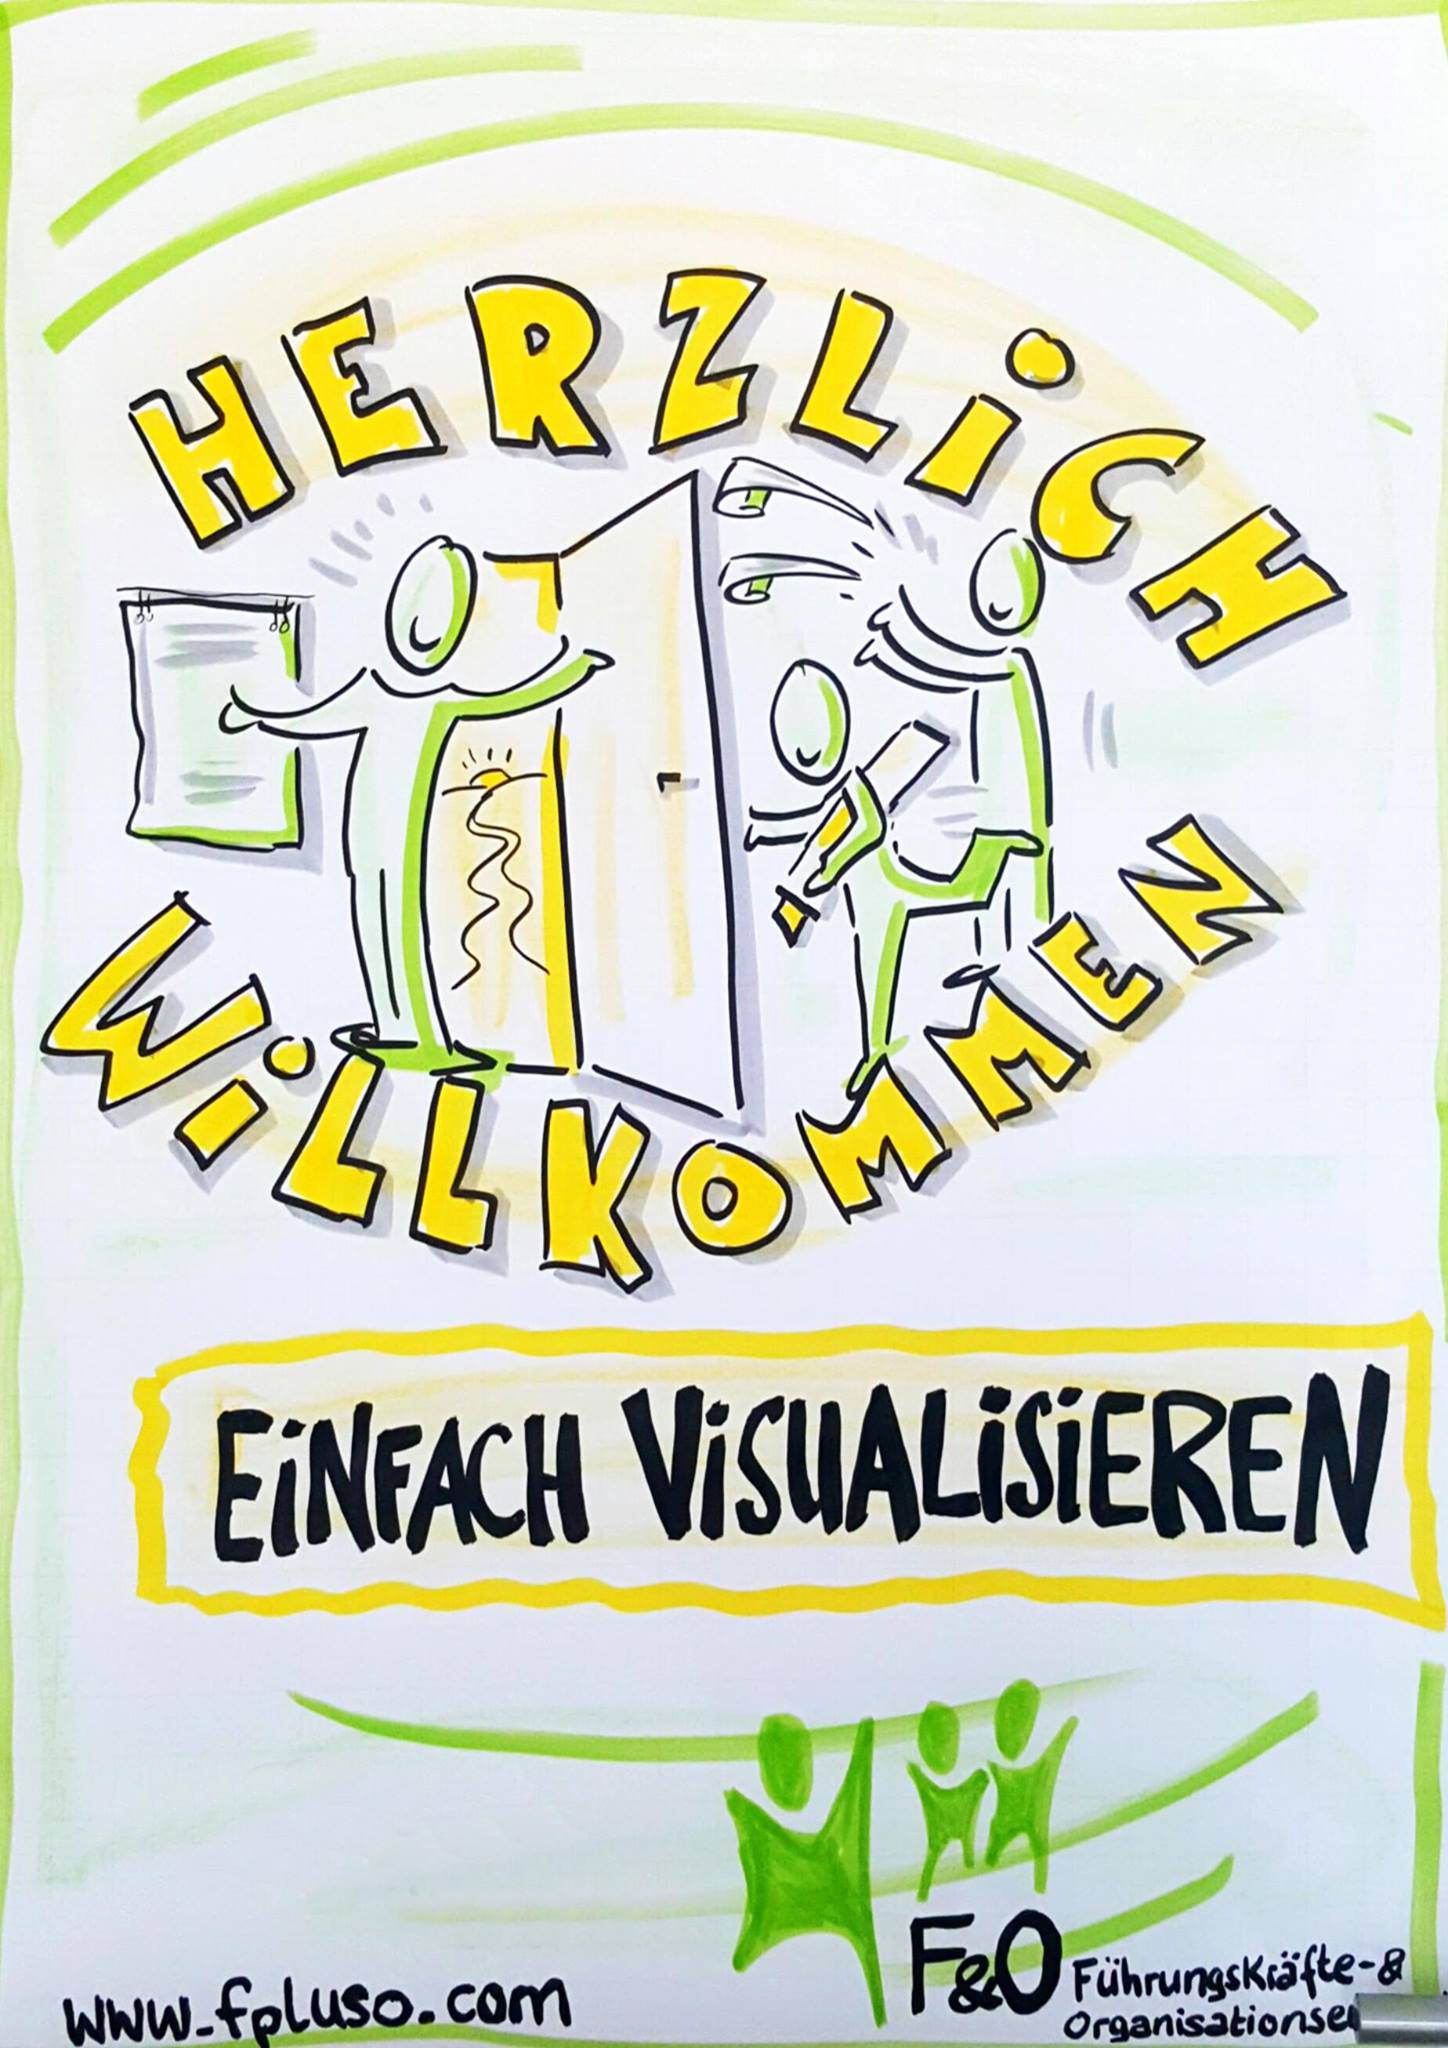 18. September 2018 – Einfach Visualisieren!